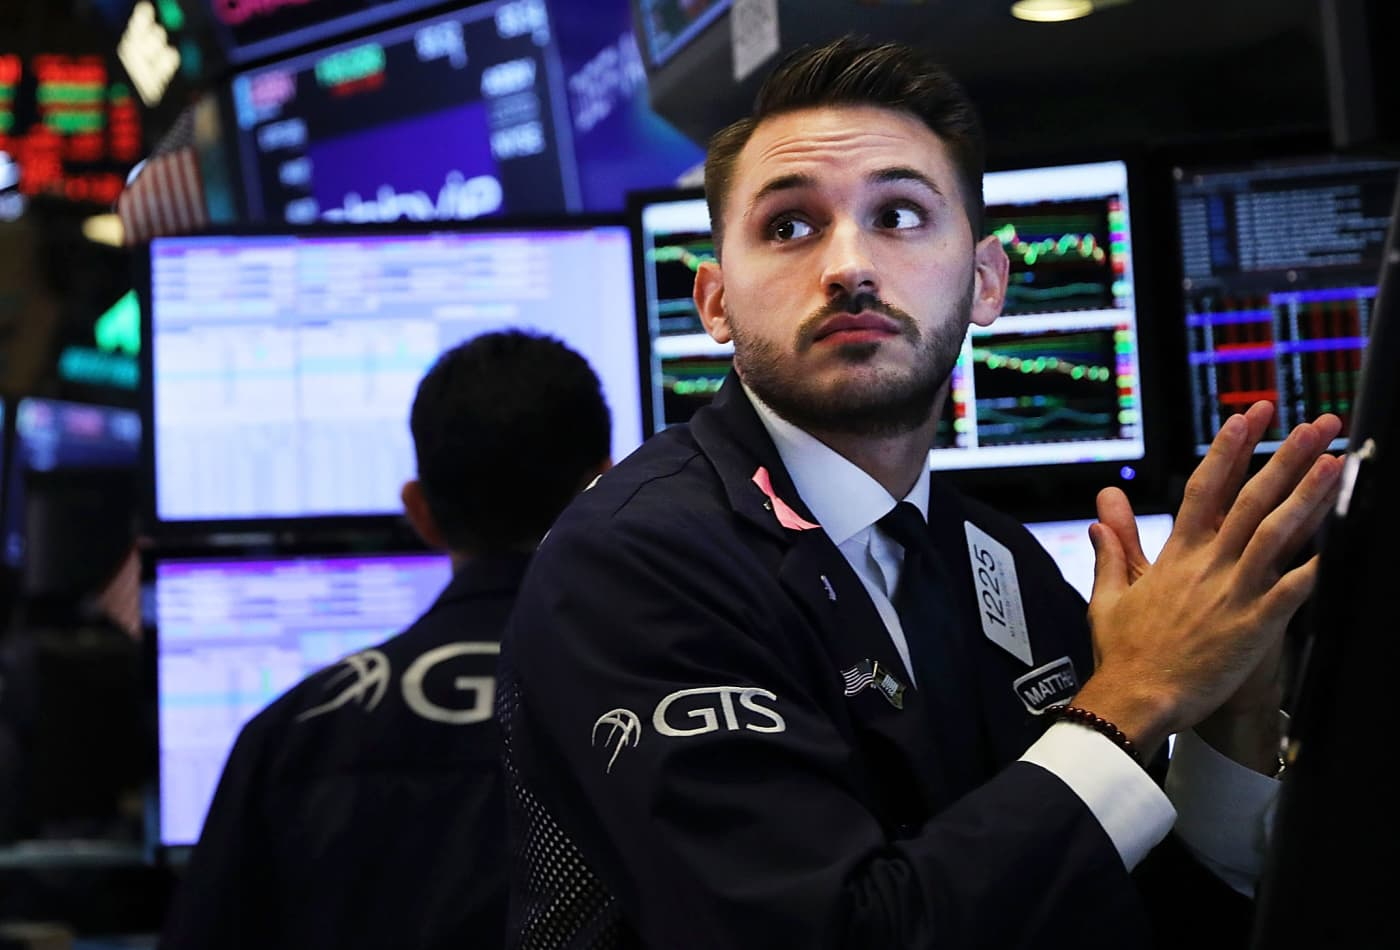 Vanguard dramatically cuts its expected rate of return for the stock market over the next decade